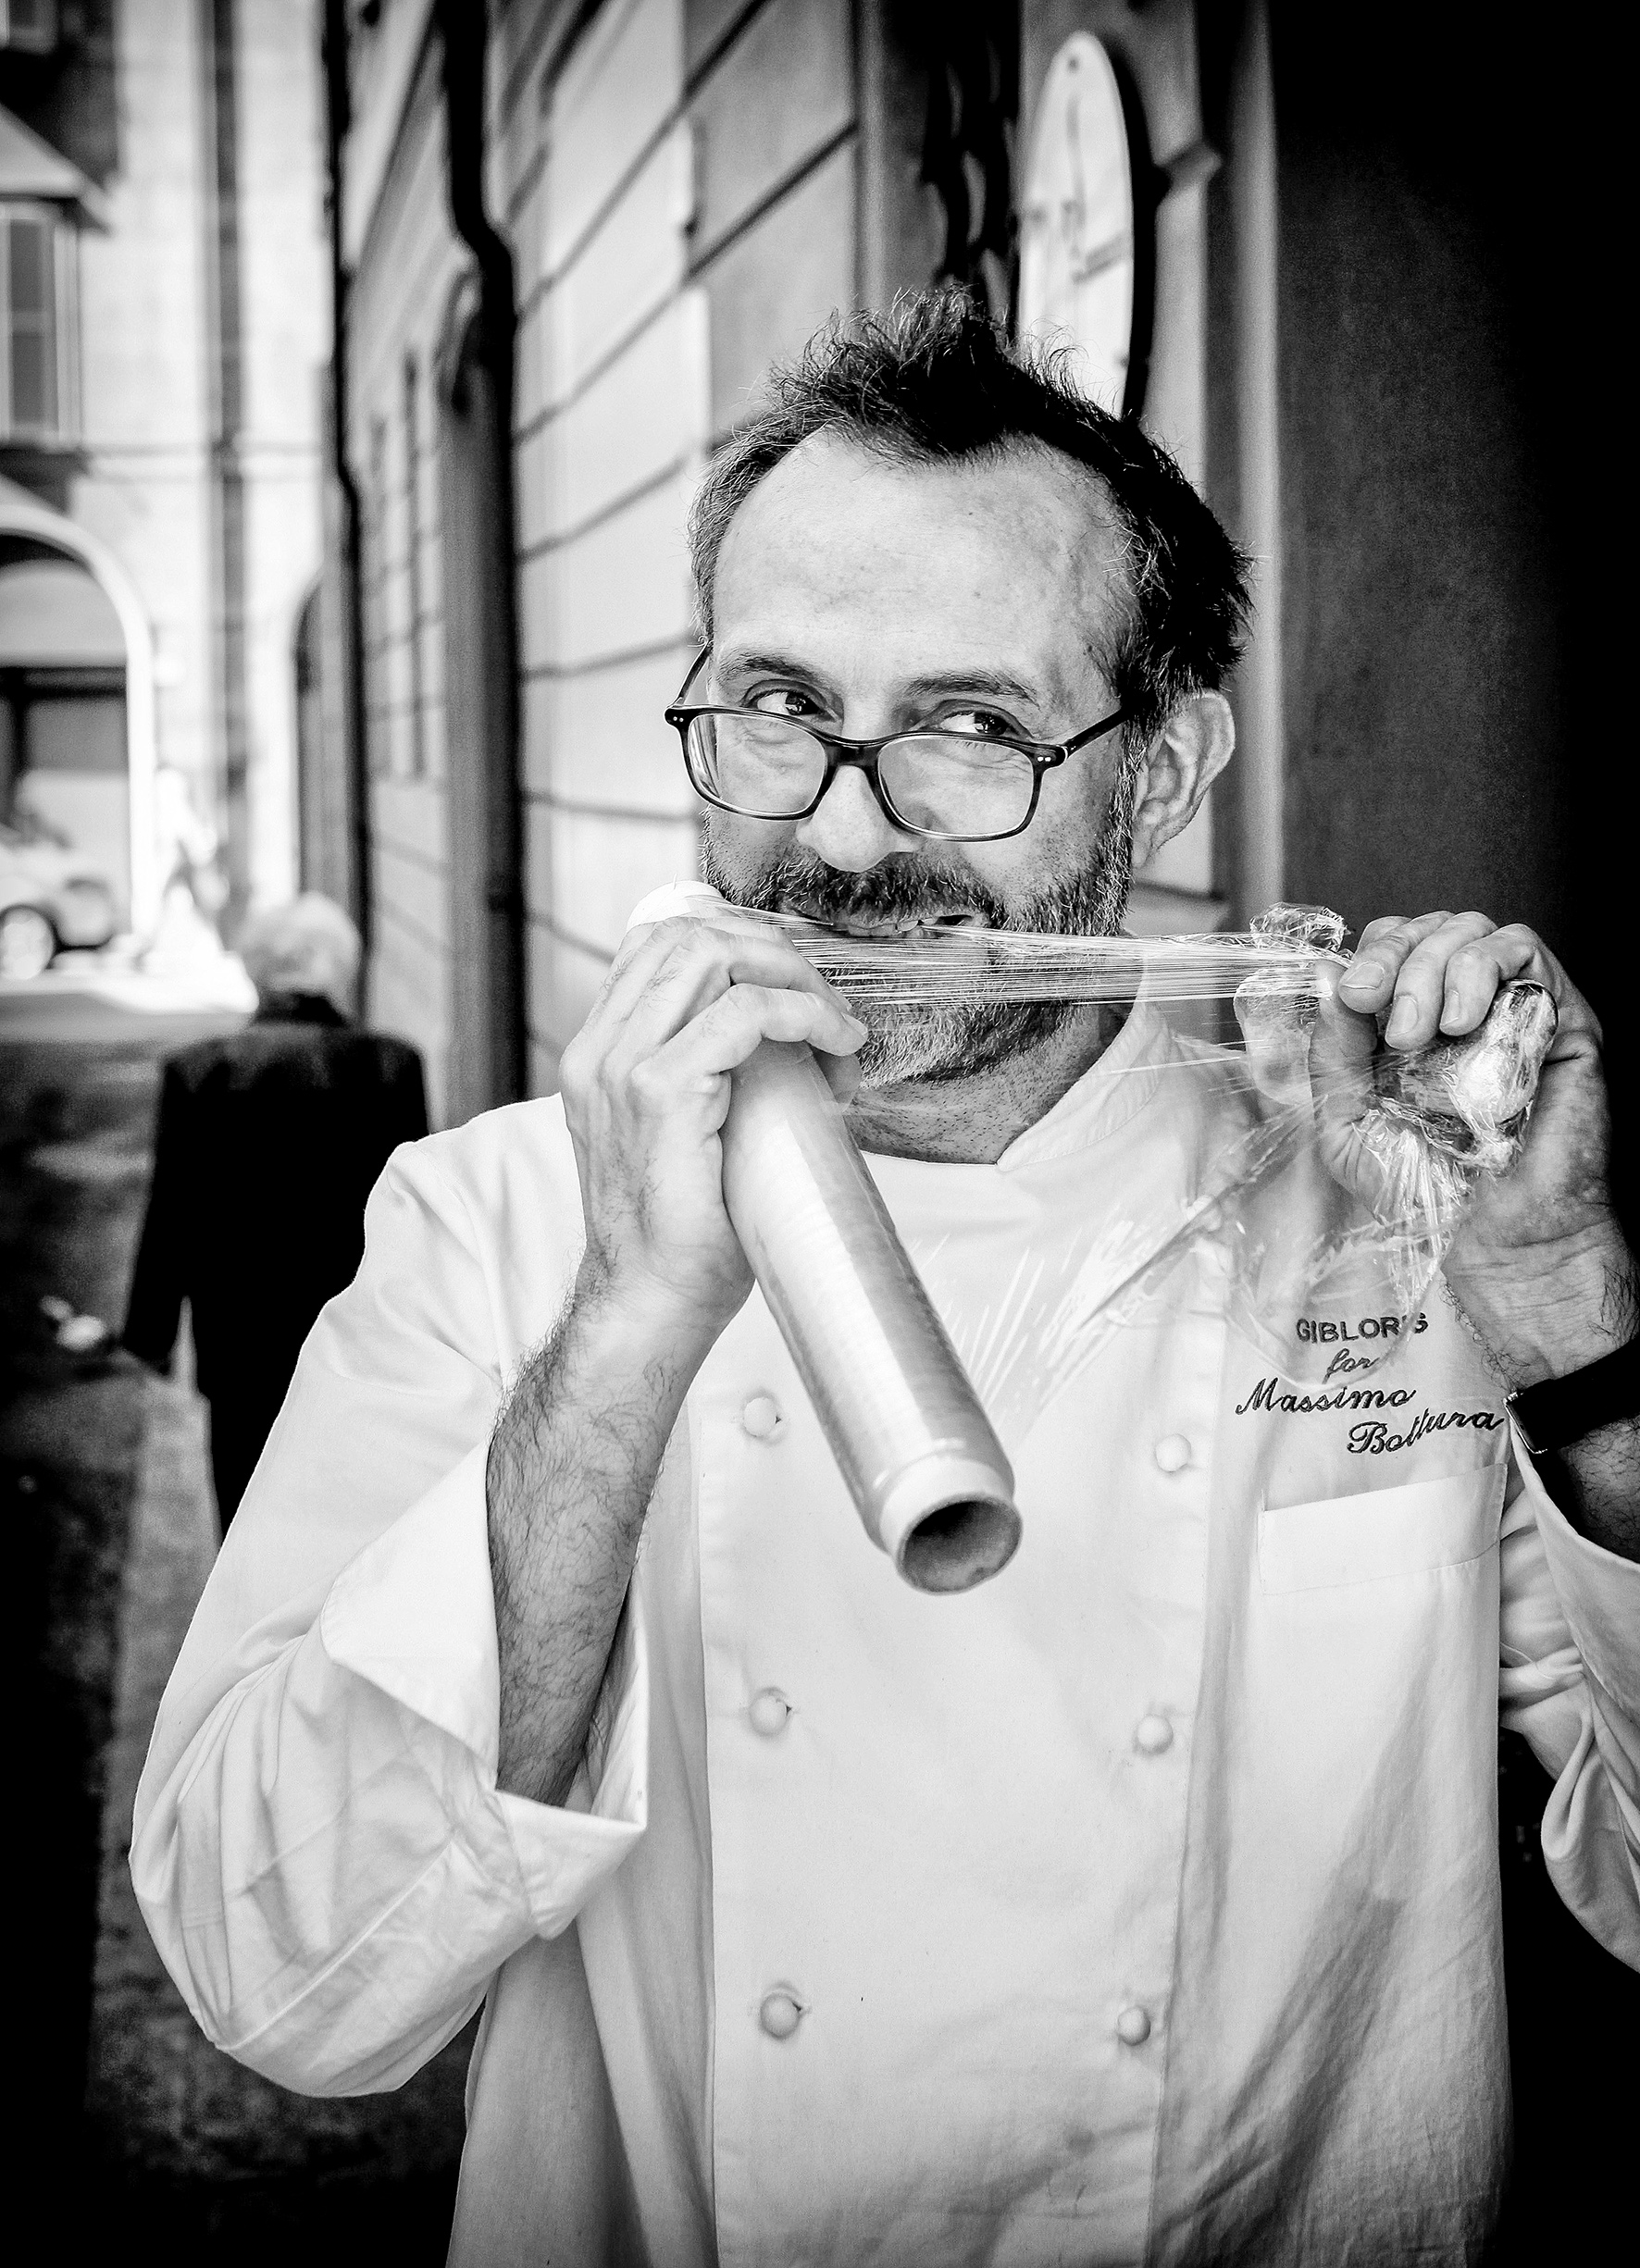 Chef Portraits | Massimo Bottura, three Michelin star chef and owner of the restaurant Osteria Francescana | Modena, Italy 2012